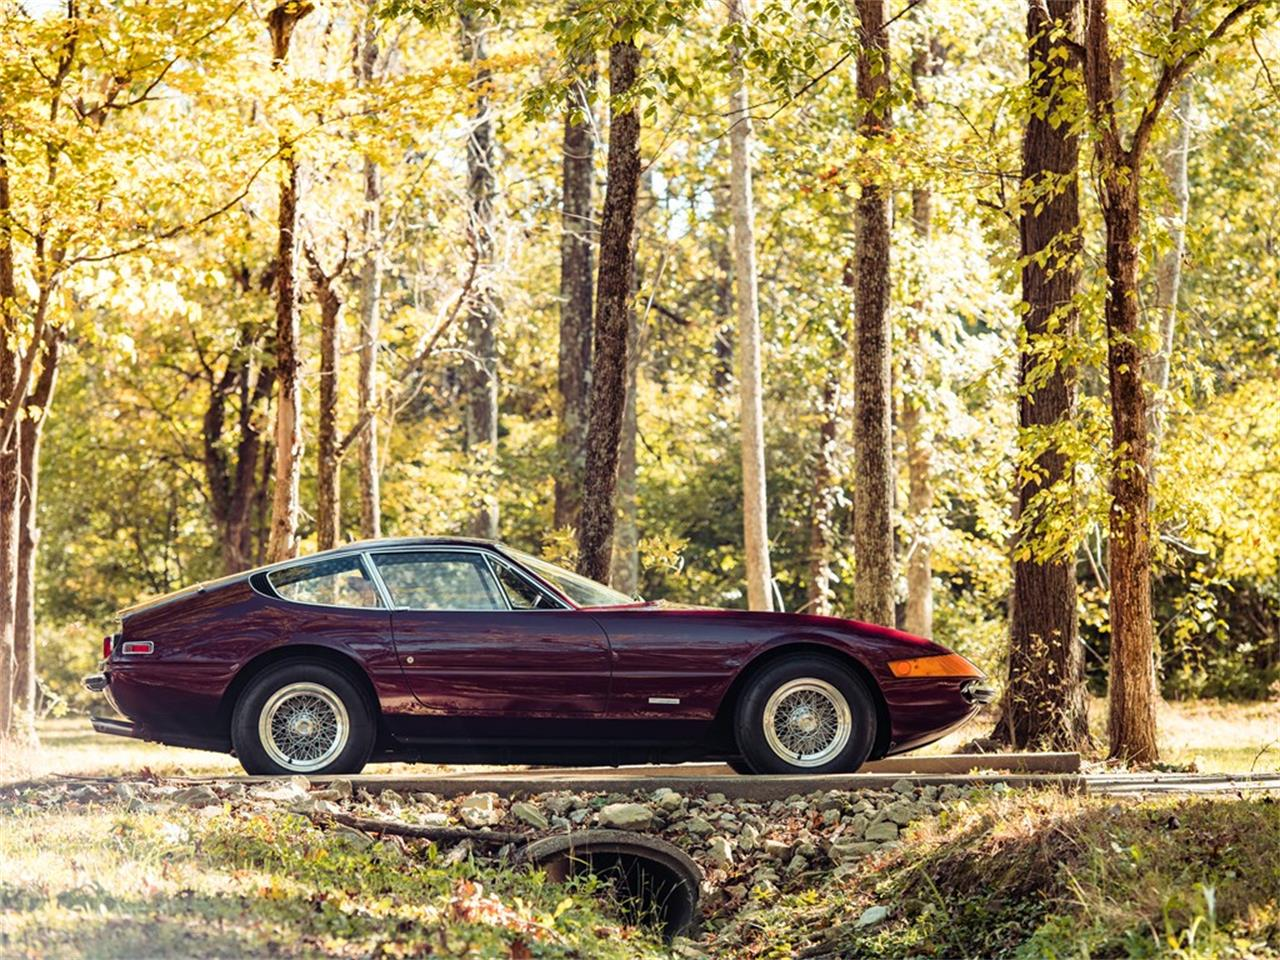 Large Picture of Classic '72 365 GTB/4 Daytona Berlinetta - OW0C